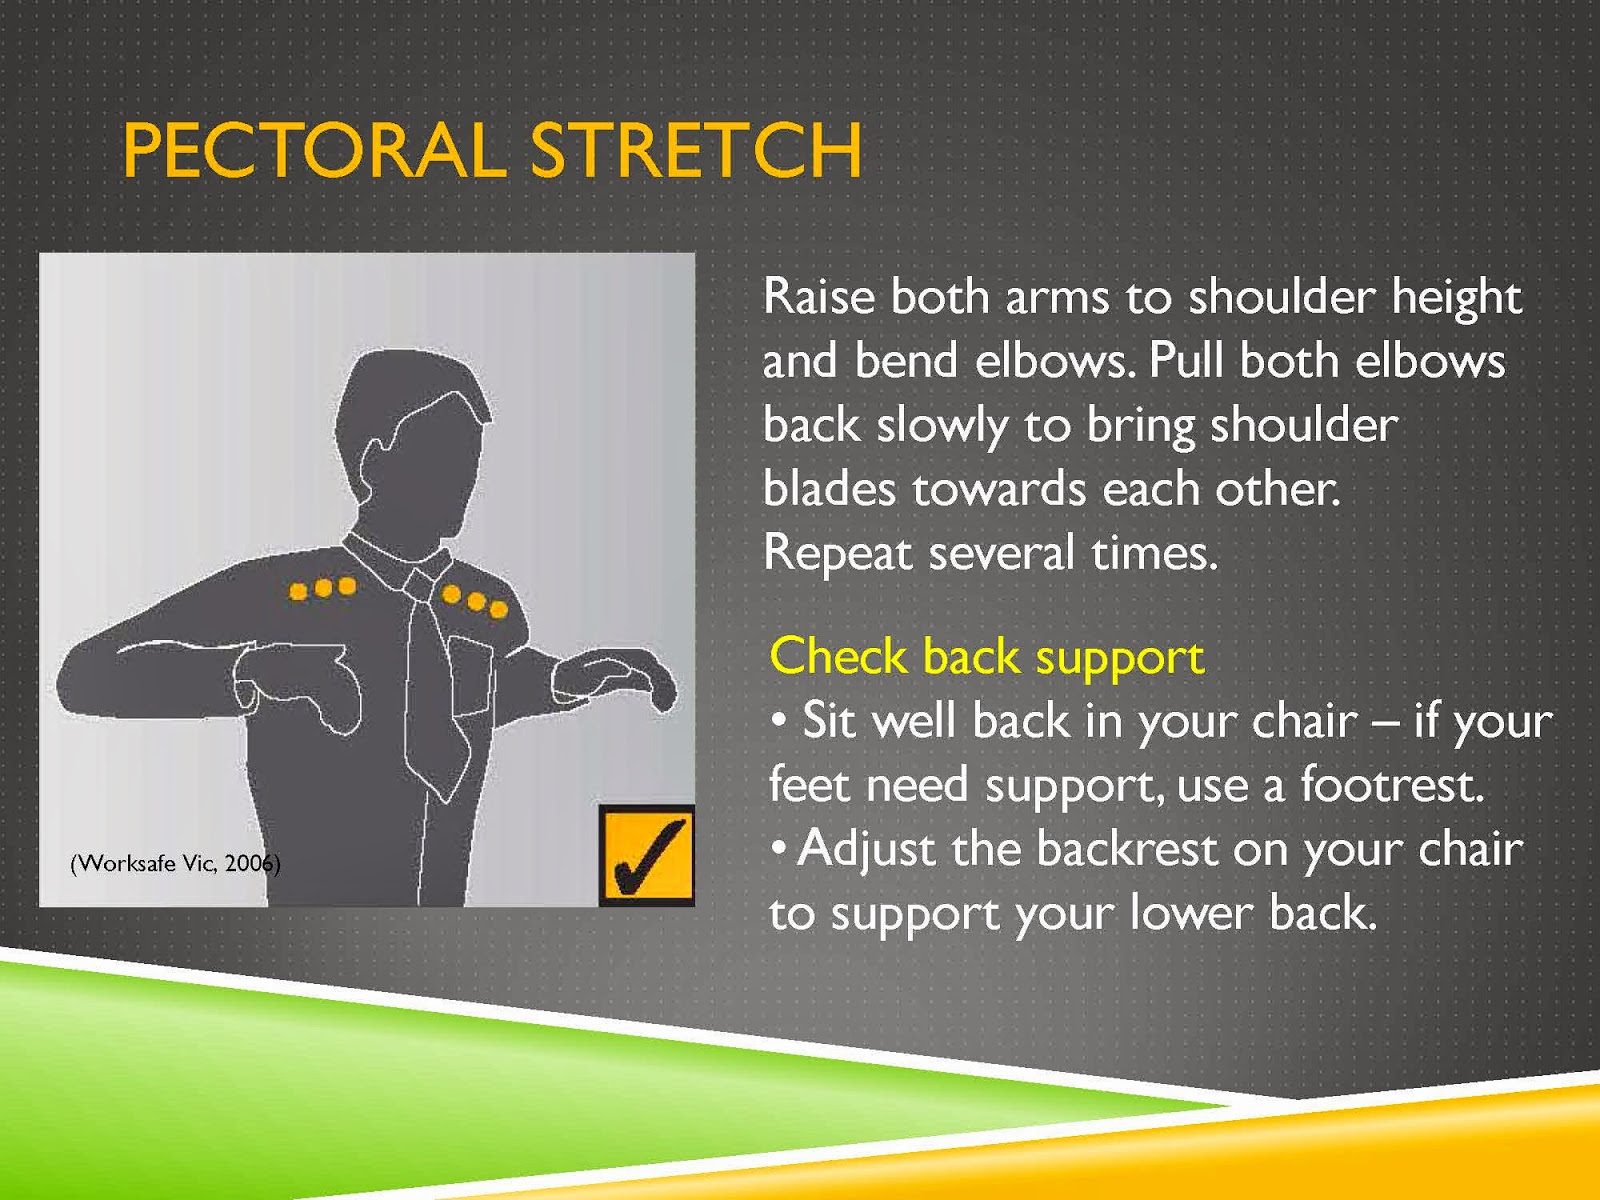 PECTORAL STRETCH